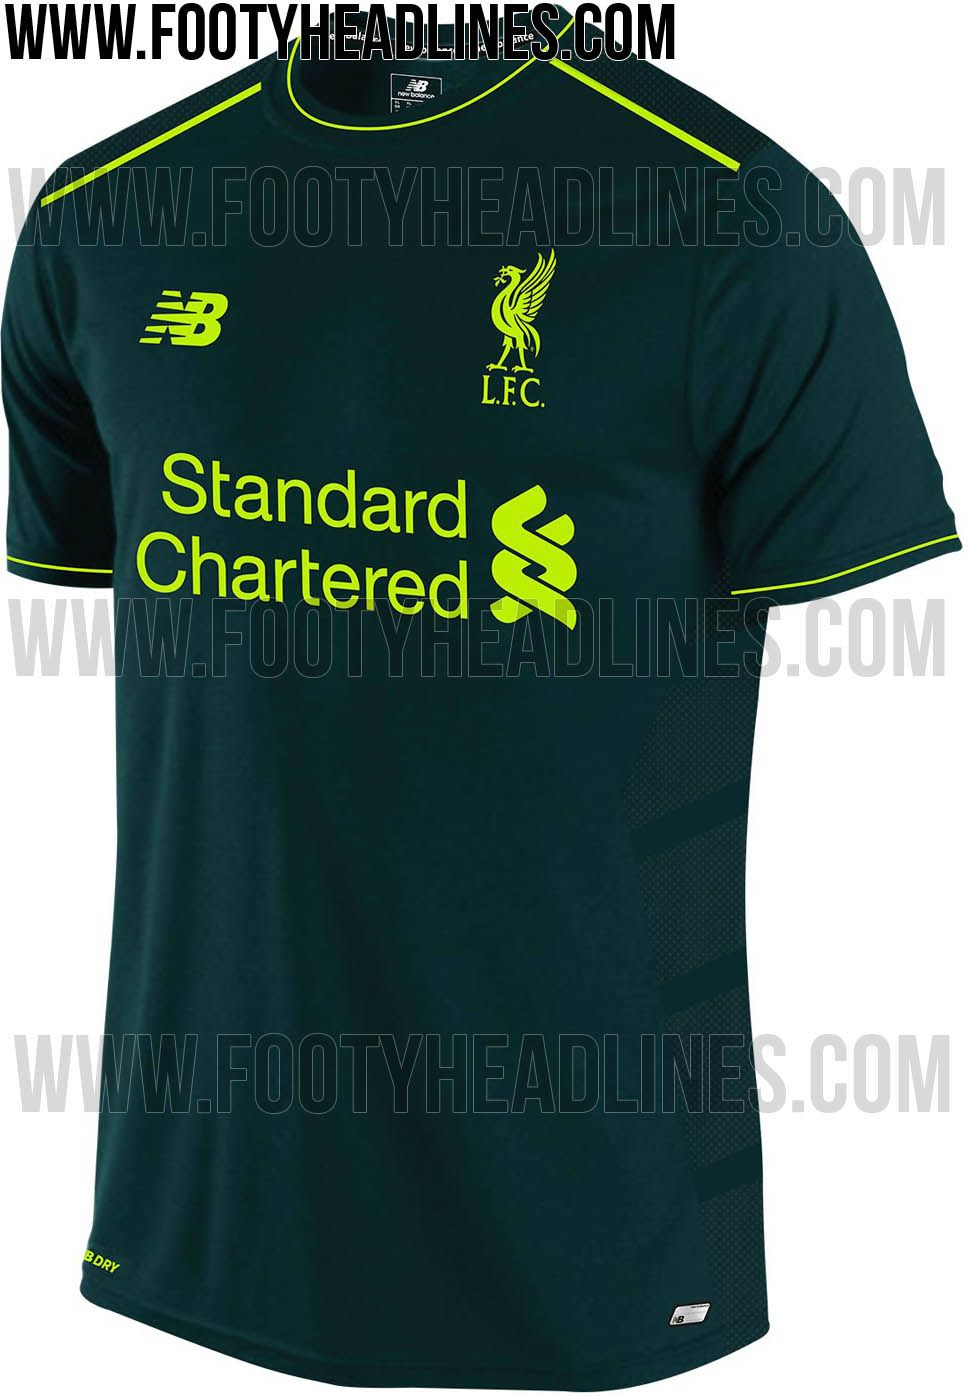 aaf1946cc Liverpool 16-17 Third Kit Leaked - Footy Headlines